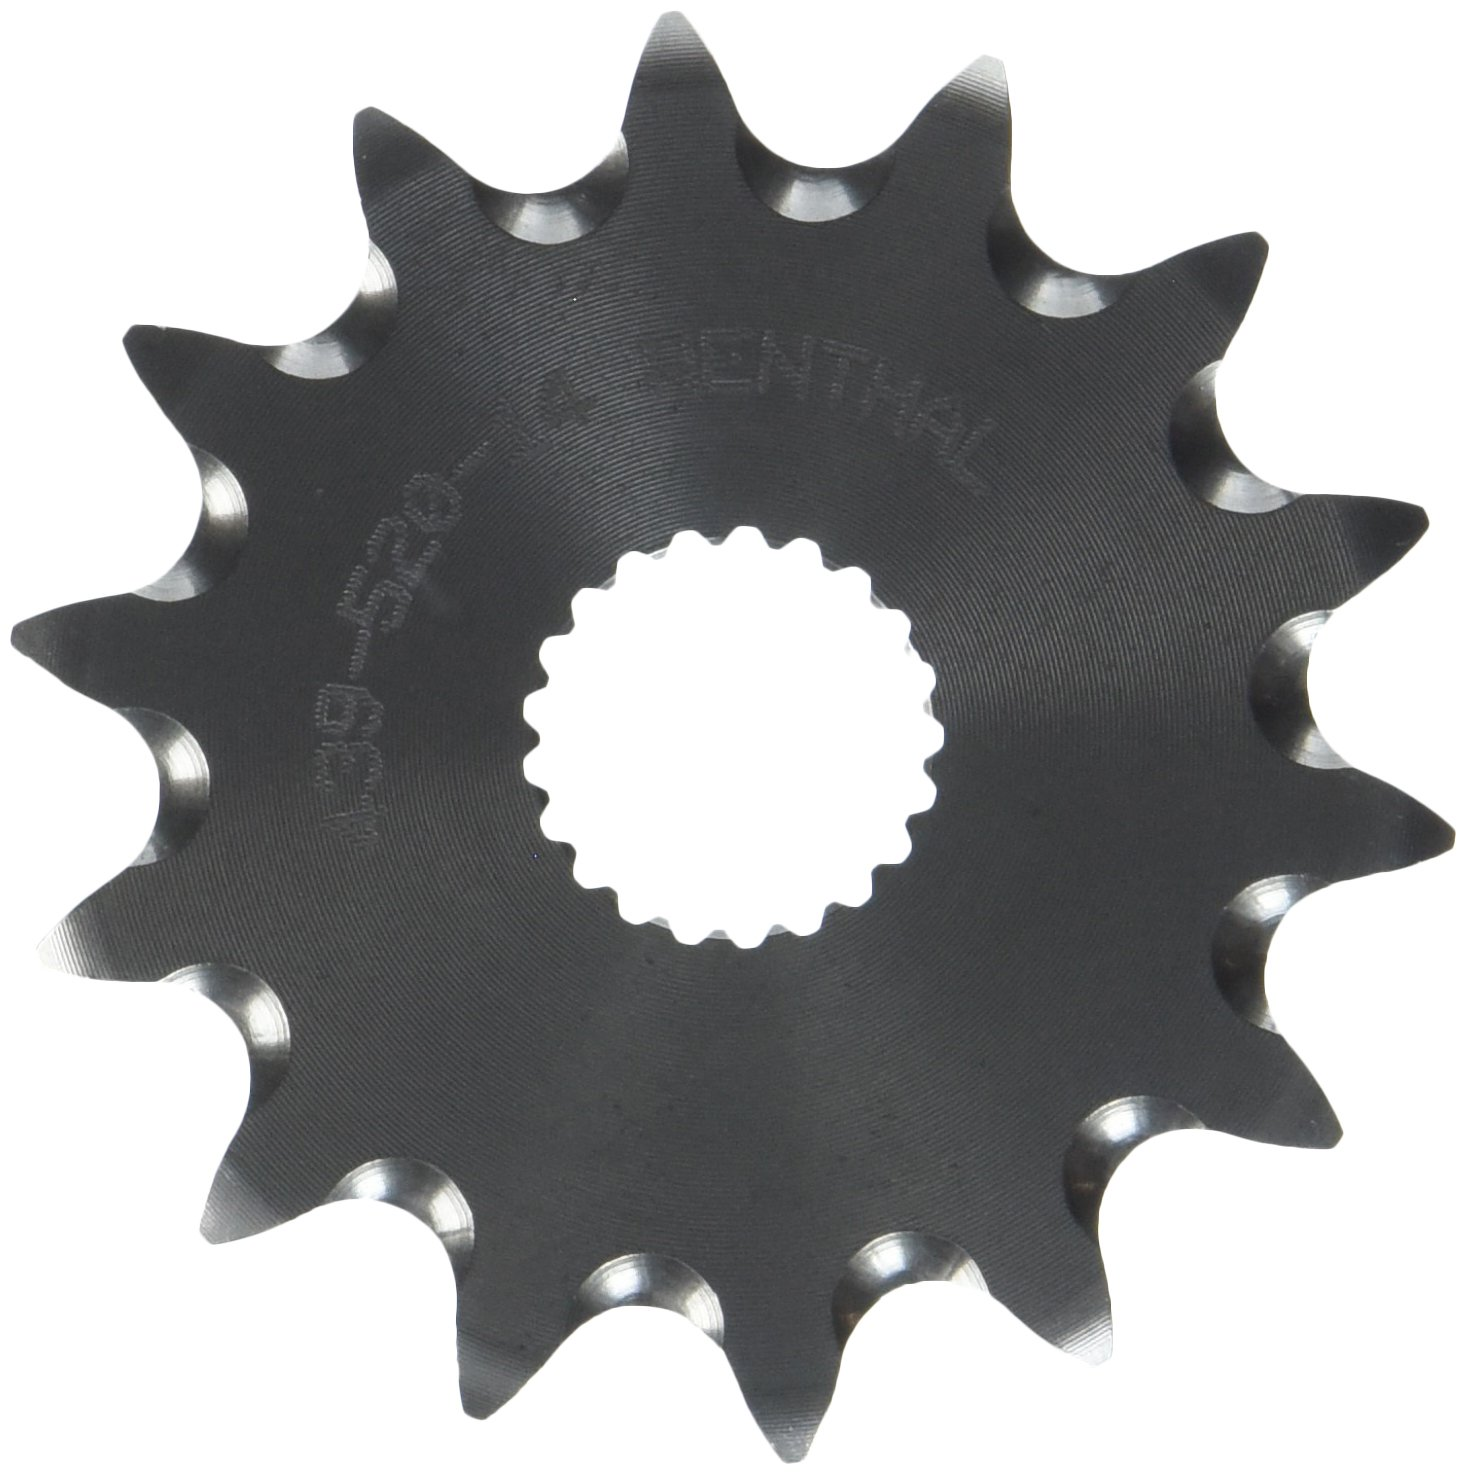 Renthal Sprocket 14GP 520  Replacement for 439  17  Tooth Sprocket CR 125  CRF 250, 04-, 14  Tooth 14 Tooth 439-520-14